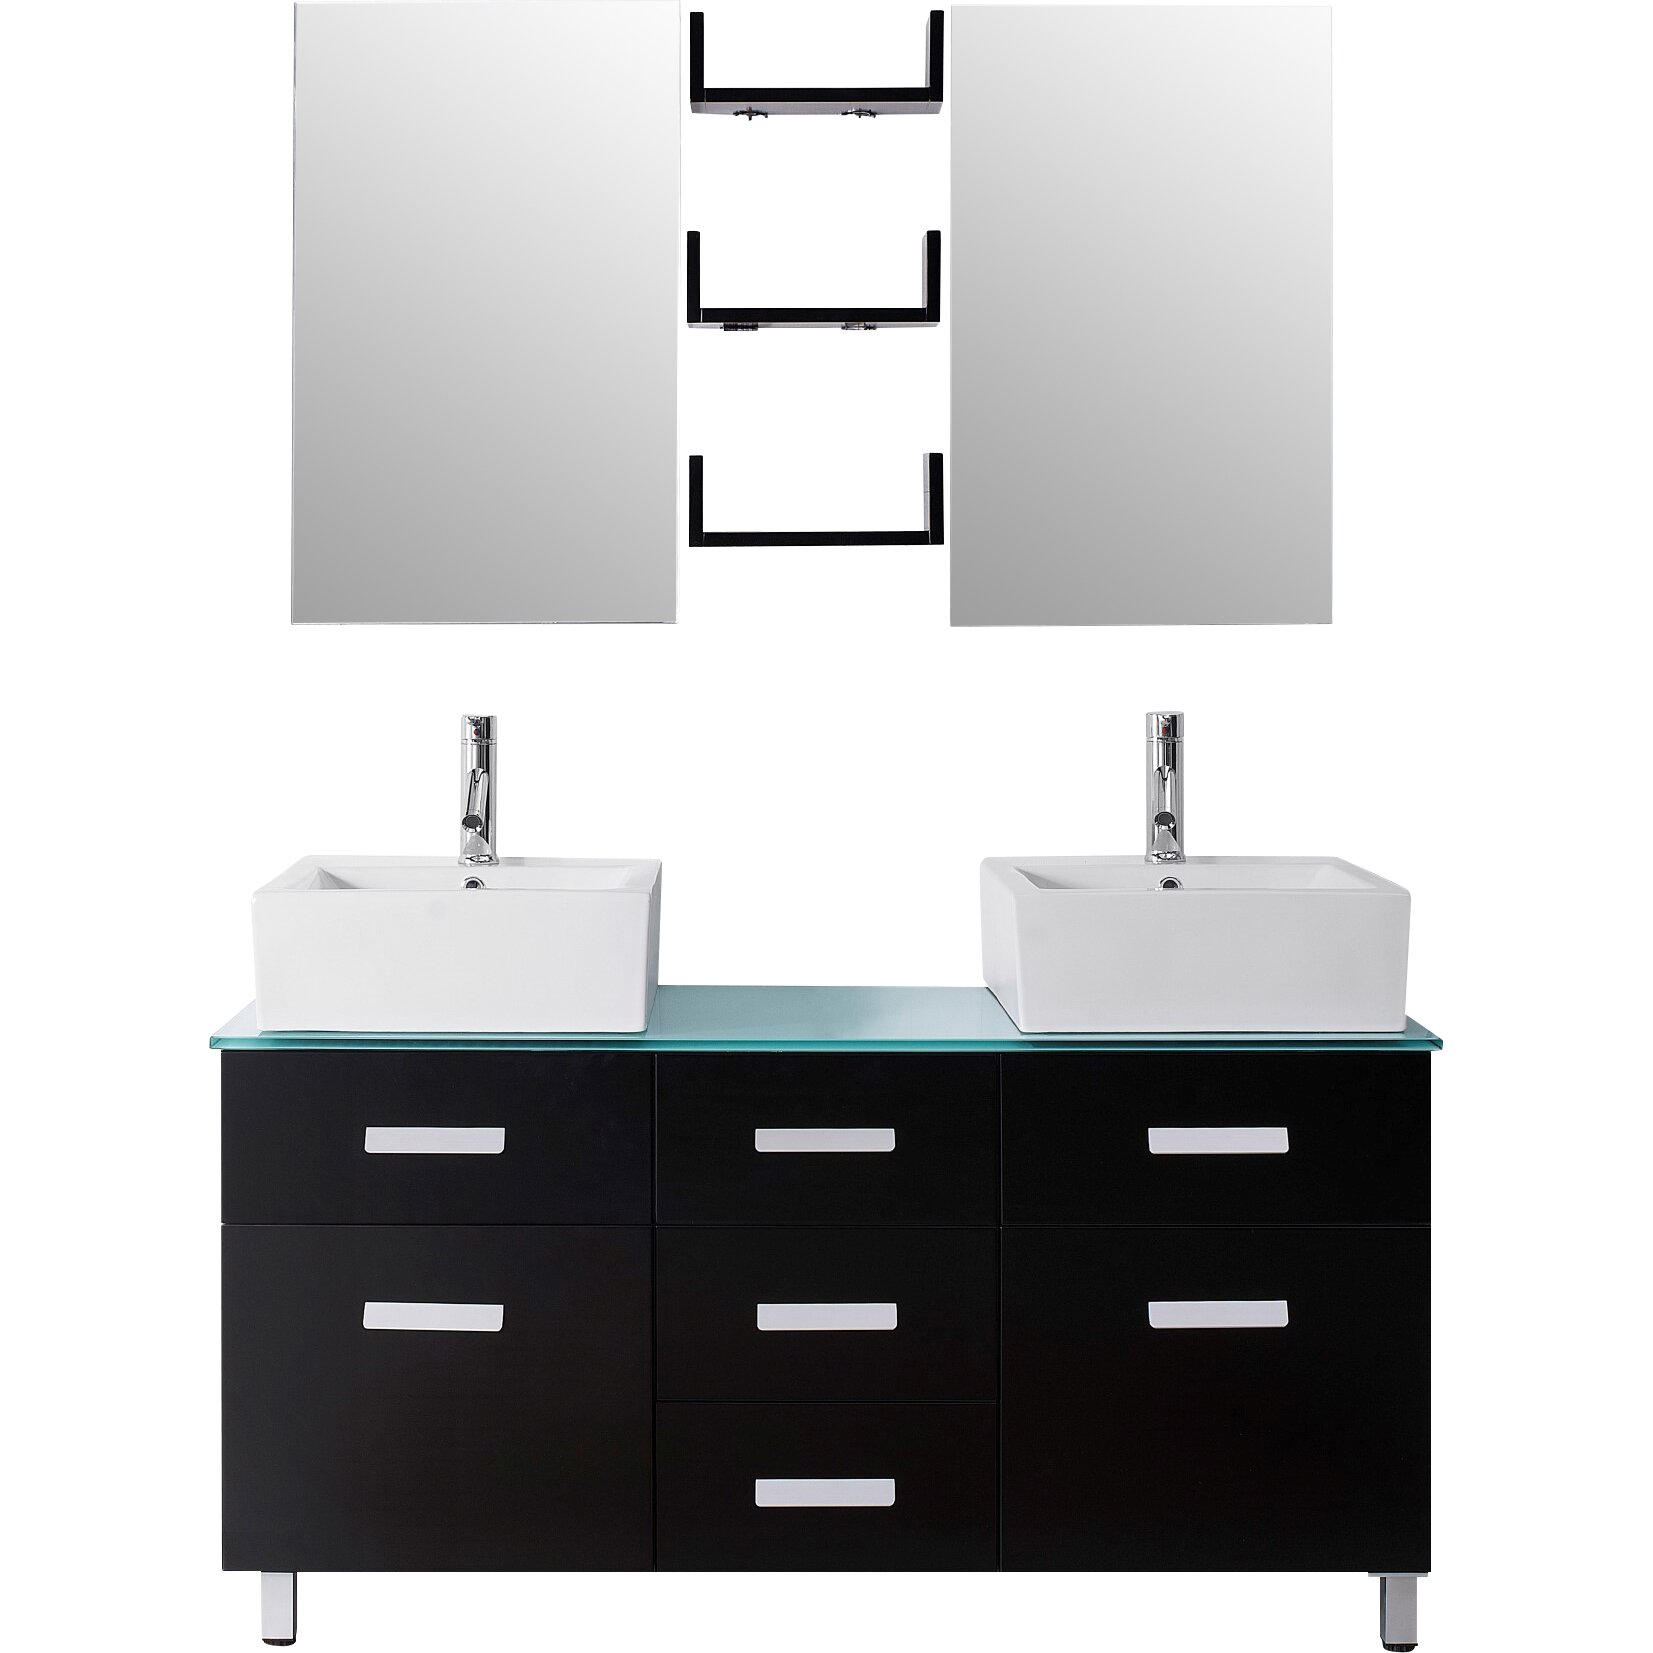 Virtu ultra modern series 56 double bathroom vanity set with mirror wayfair - Kona modern bathroom vanity set ...